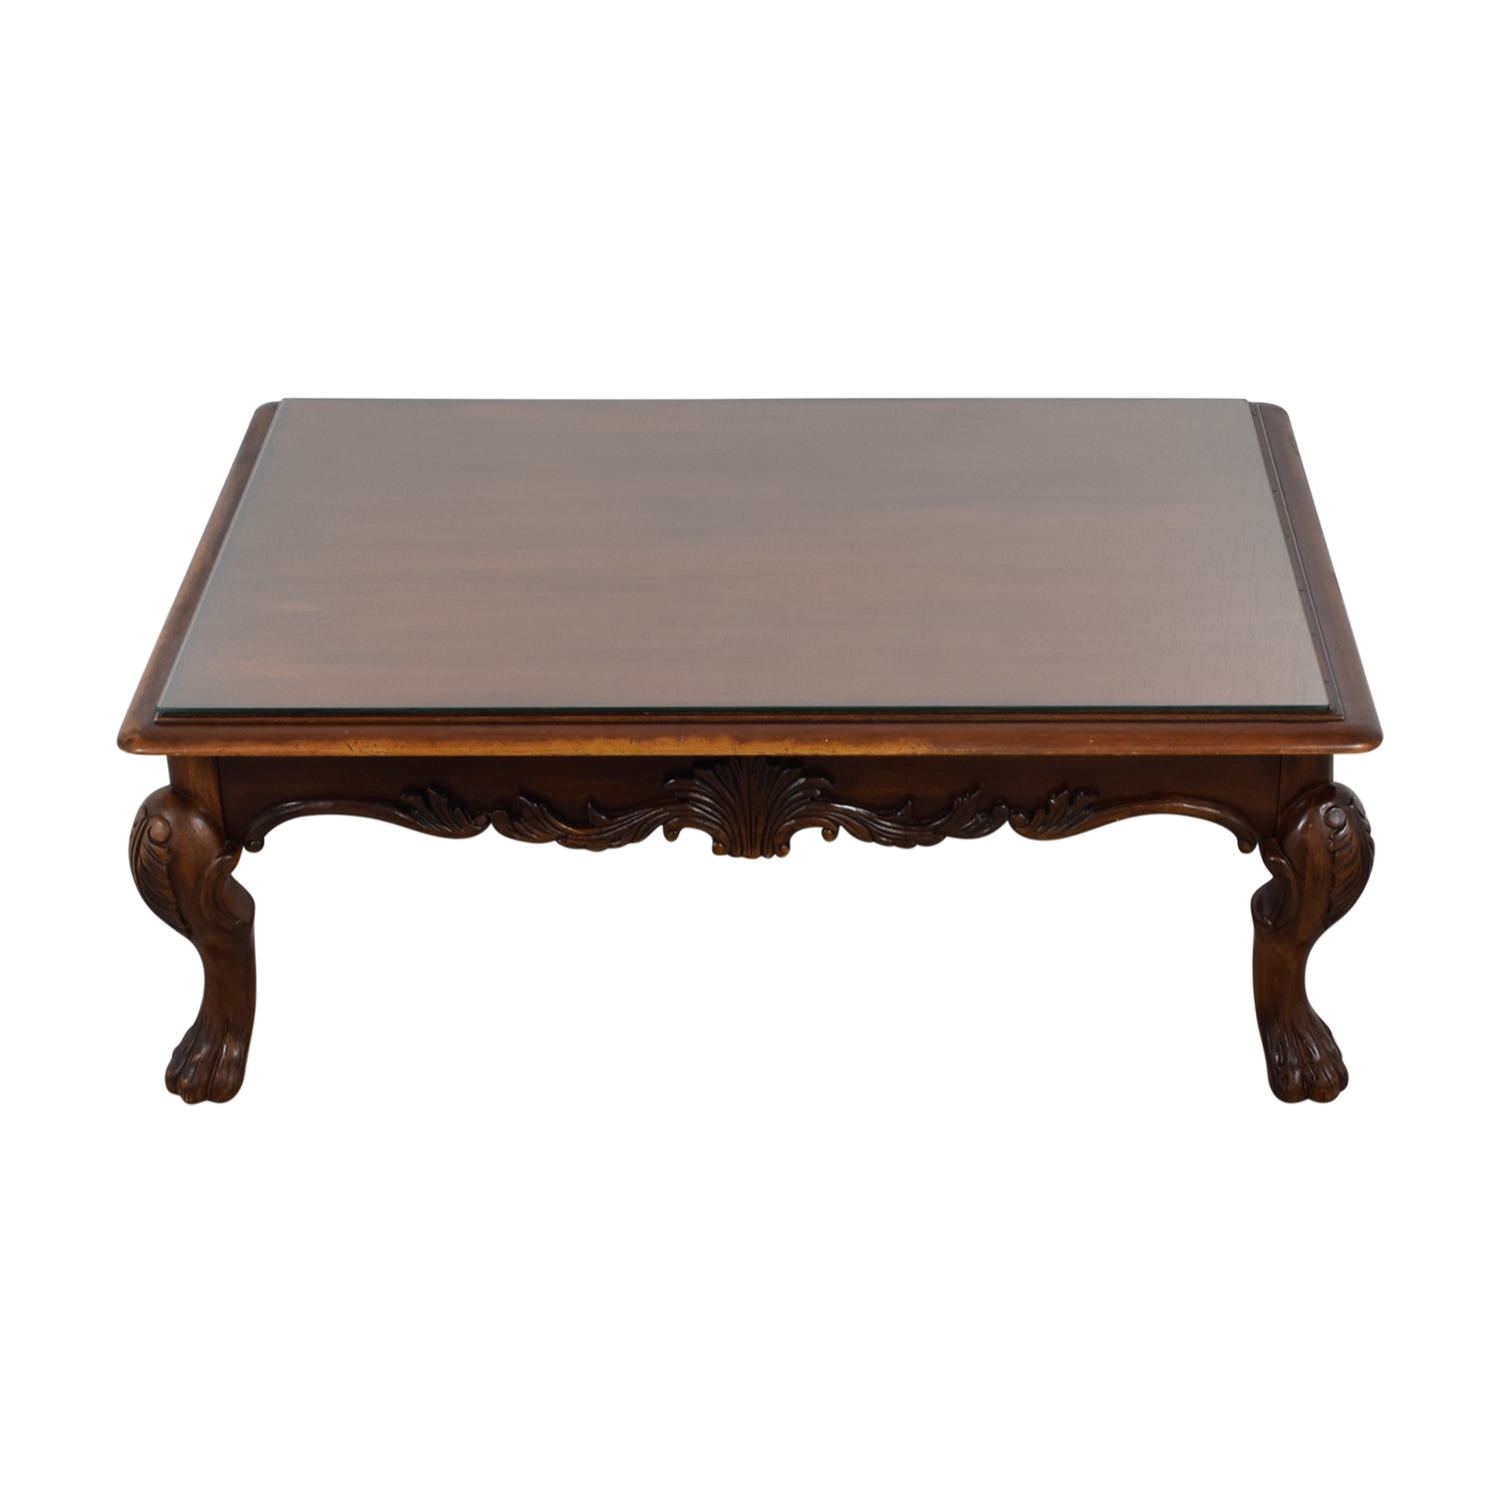 Rectangular Carved Wood Coffee Table with Glass Top sale